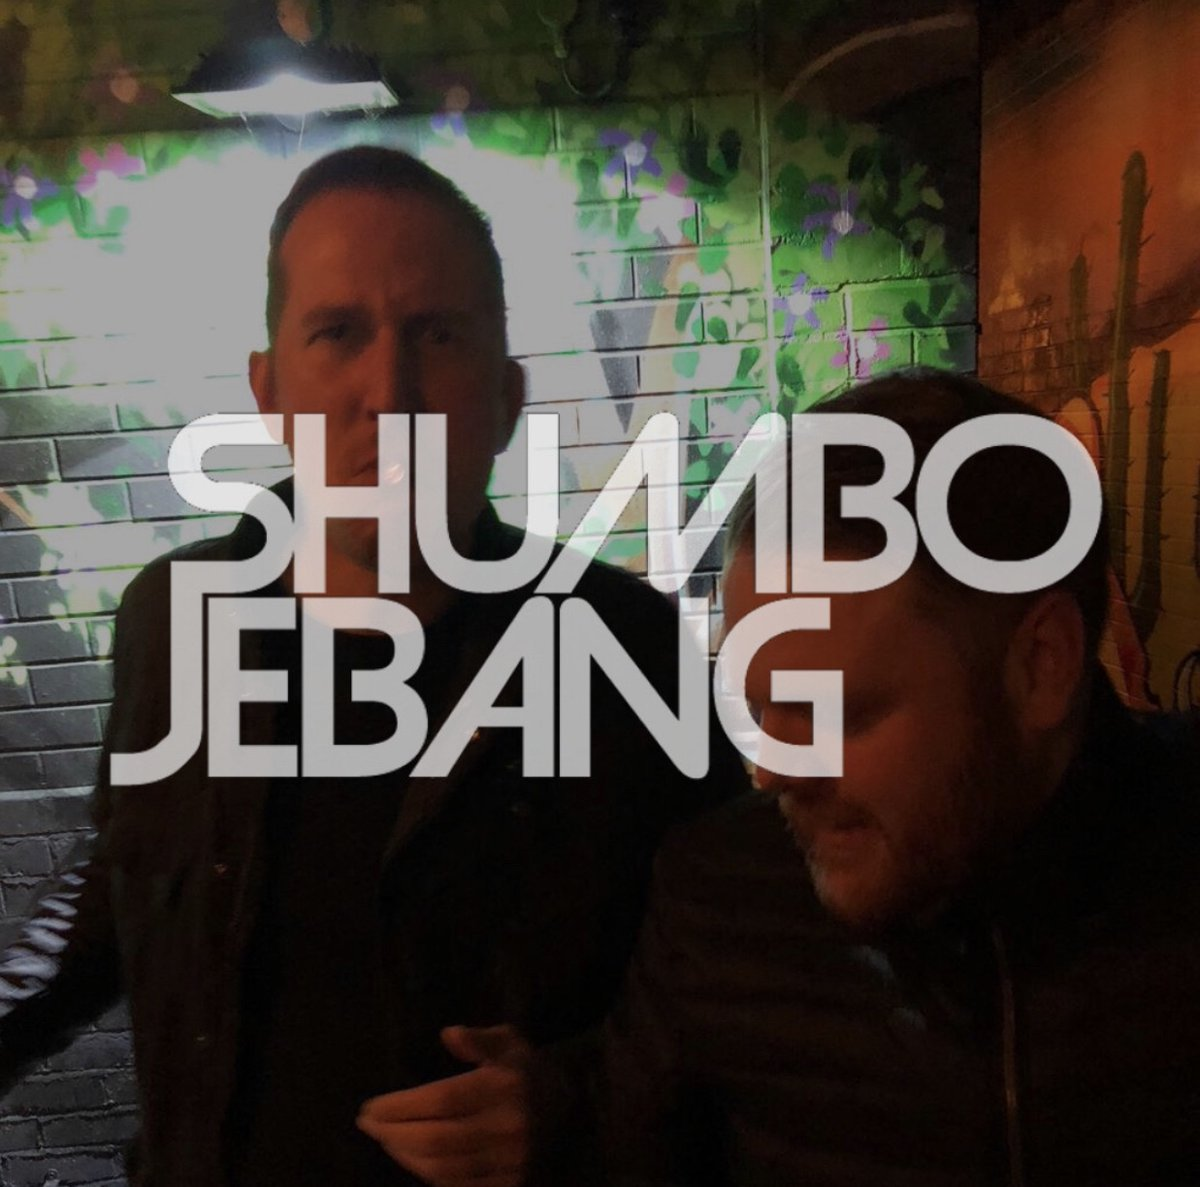 Live in 5, Shumbo Jebang! tune in!  #house #techno #radio #streaming #udgk #housemusiclovers #technomusiclovers #technoradio #houseradio #dancing #raving #goodtimes #goodvibes #berlin #nyc  #ibiza #london #friday #fridaynight #weekend #welcome #manchester